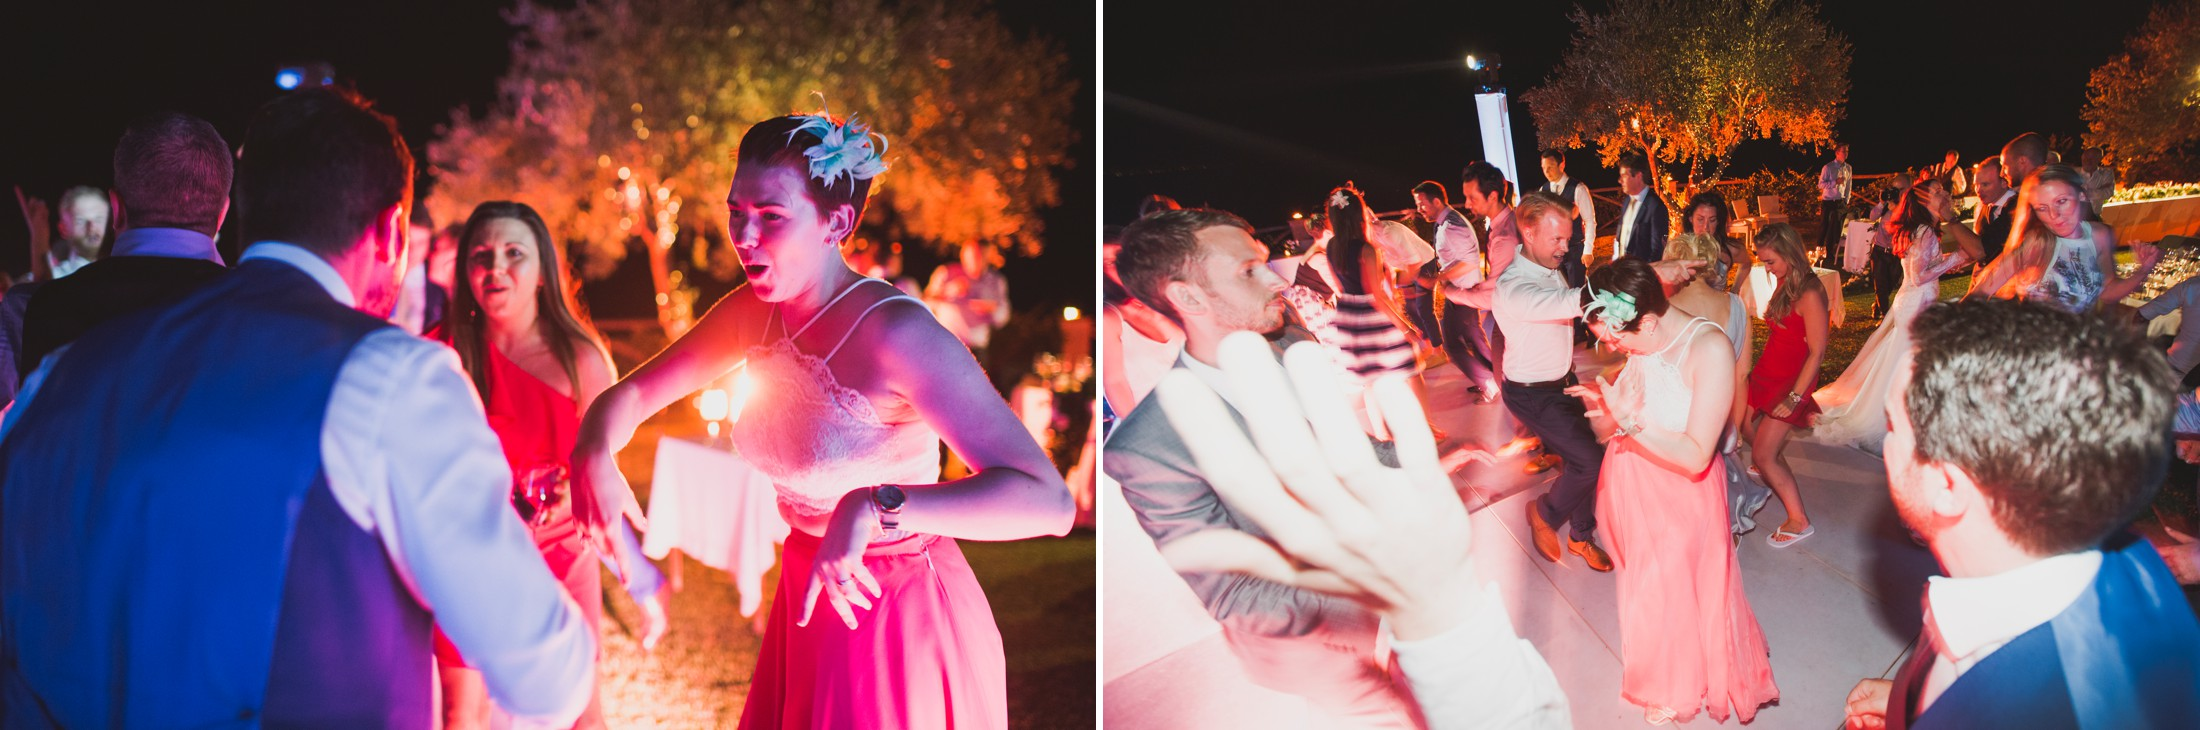 collage guests dancing during the wedding dance party at villa cimbrone ravello